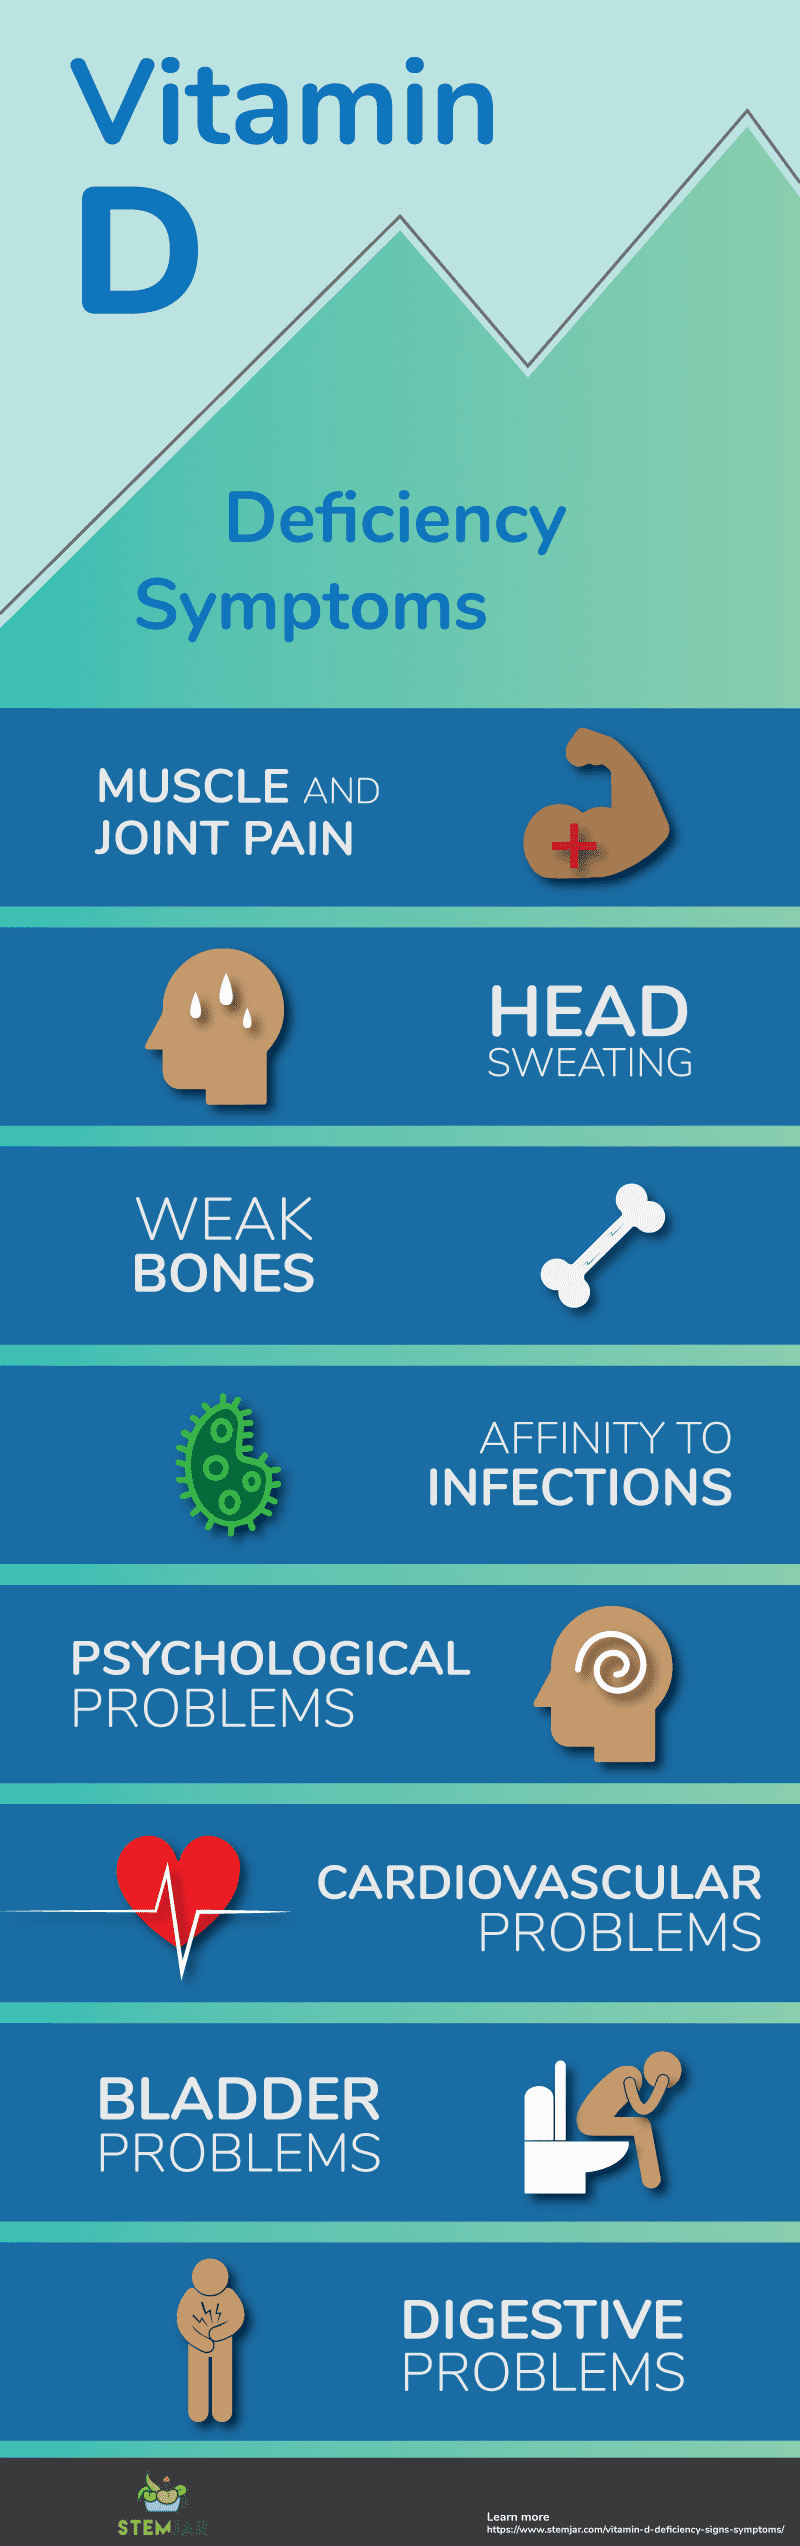 vitamin d deficiency symptoms info graphic